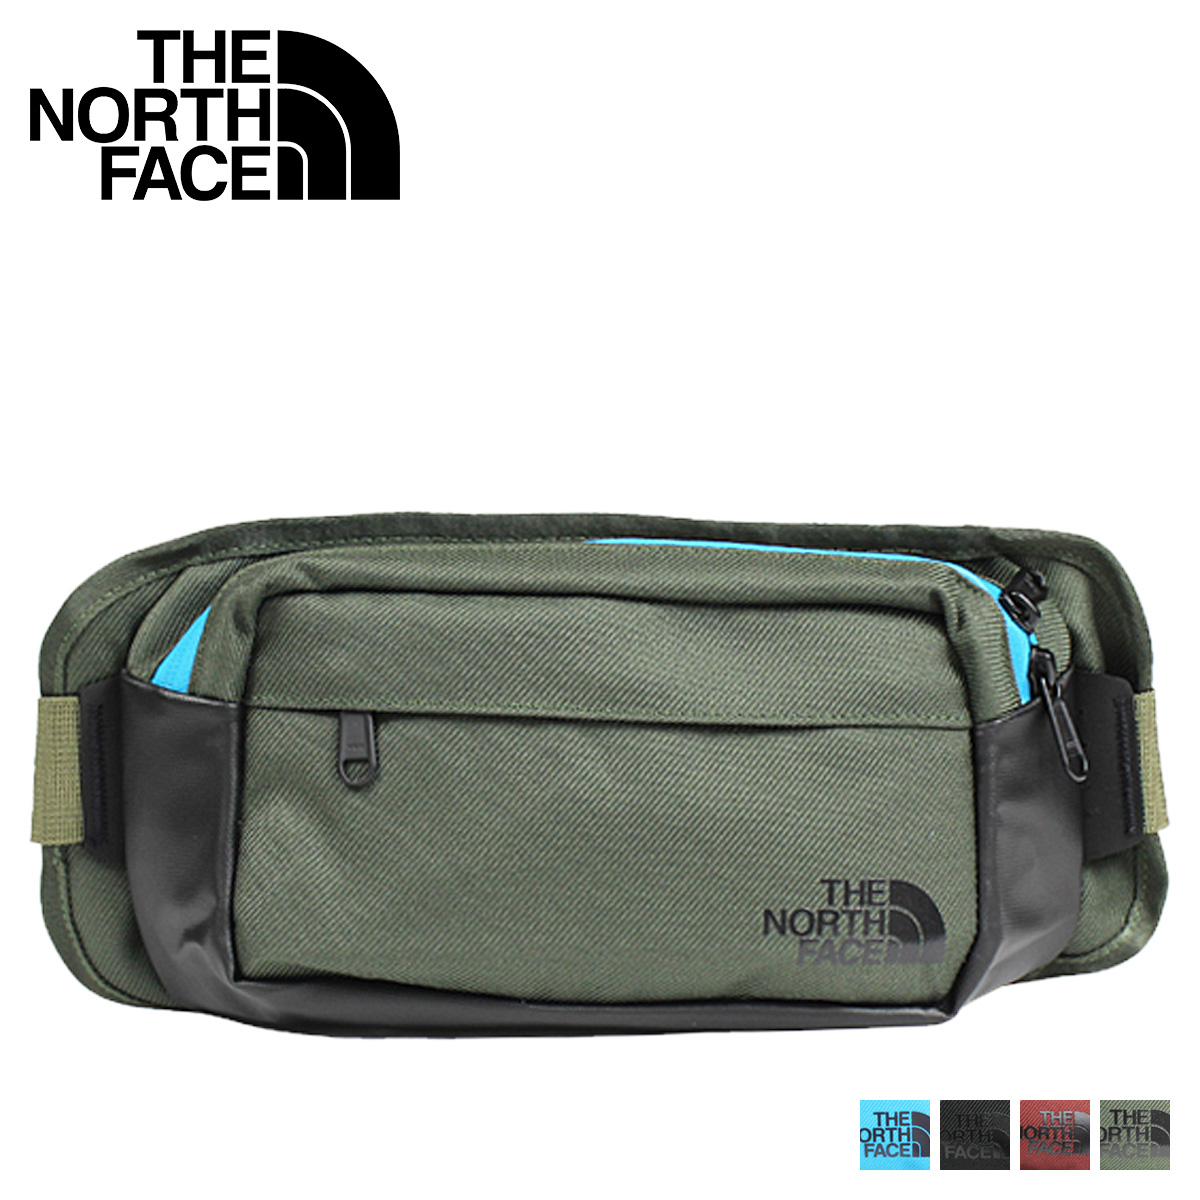 09dce087d Point 2 times the north face THE NORTH FACE hip bag mens waist bags body  bag 2014, new A6SB4 color BOZER HIP PACK [10 / 17 new in stock] [regular]  ...